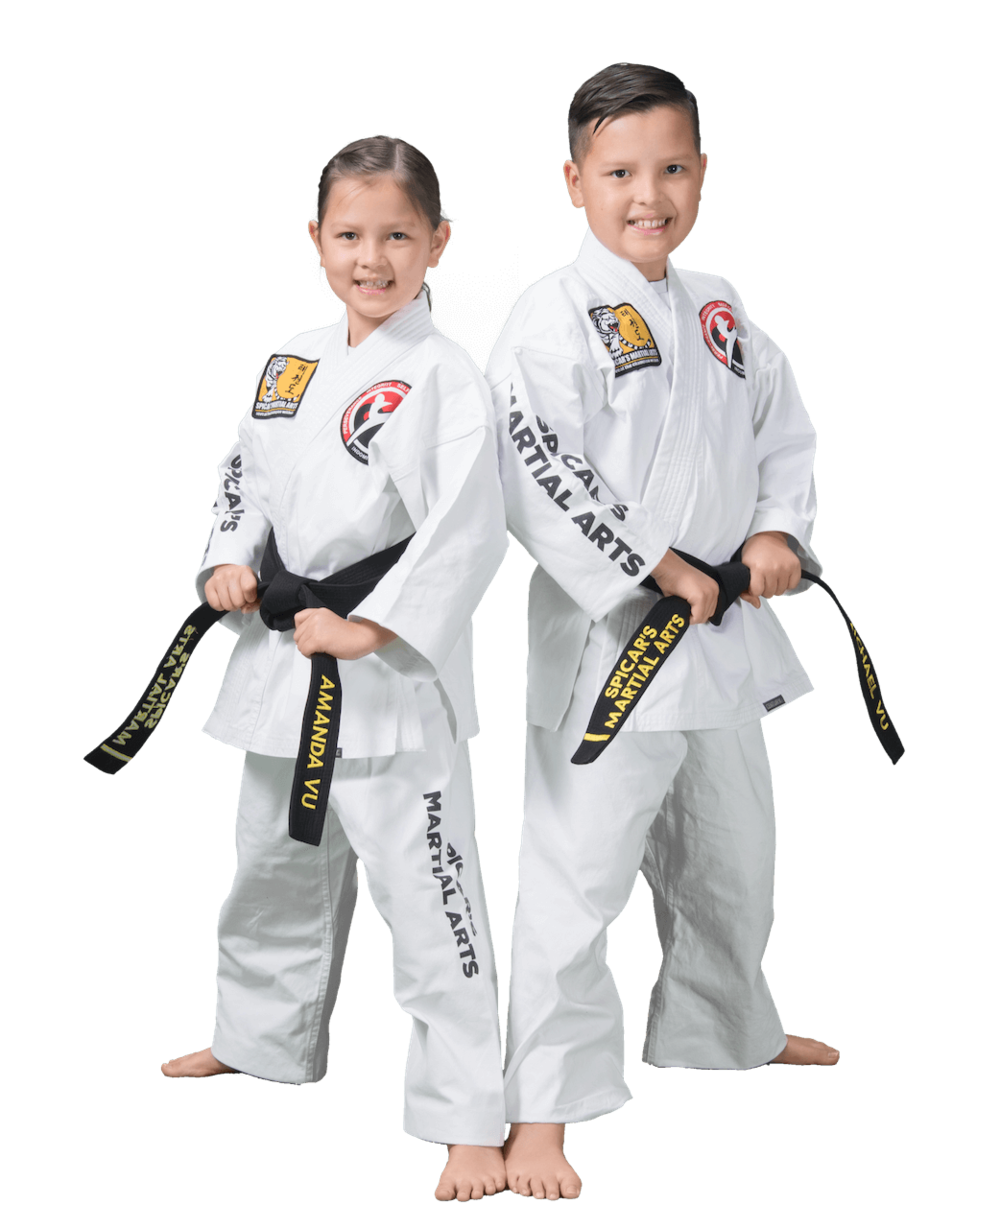 KARATE FOR KIDS(age 6-11) - Millions of children are participating in martial arts worldwide. Parents as well as child development specialists recognize its amazing physical and mental benefits.Parents, do you want your child to:✔︎ Be a better listener?✔︎ Increase their attention span?✔︎ Have more self-esteem? 💪💪✔︎ Learn goal-setting?✔︎ Improve their fitness level?✔︎ Make new friends?✔︎ Have some more fun?This is exactly what our program does and you will be amazed at what your child will accomplish.We will help your child get stronger not only physically but also emotionally, socially and intellectually.